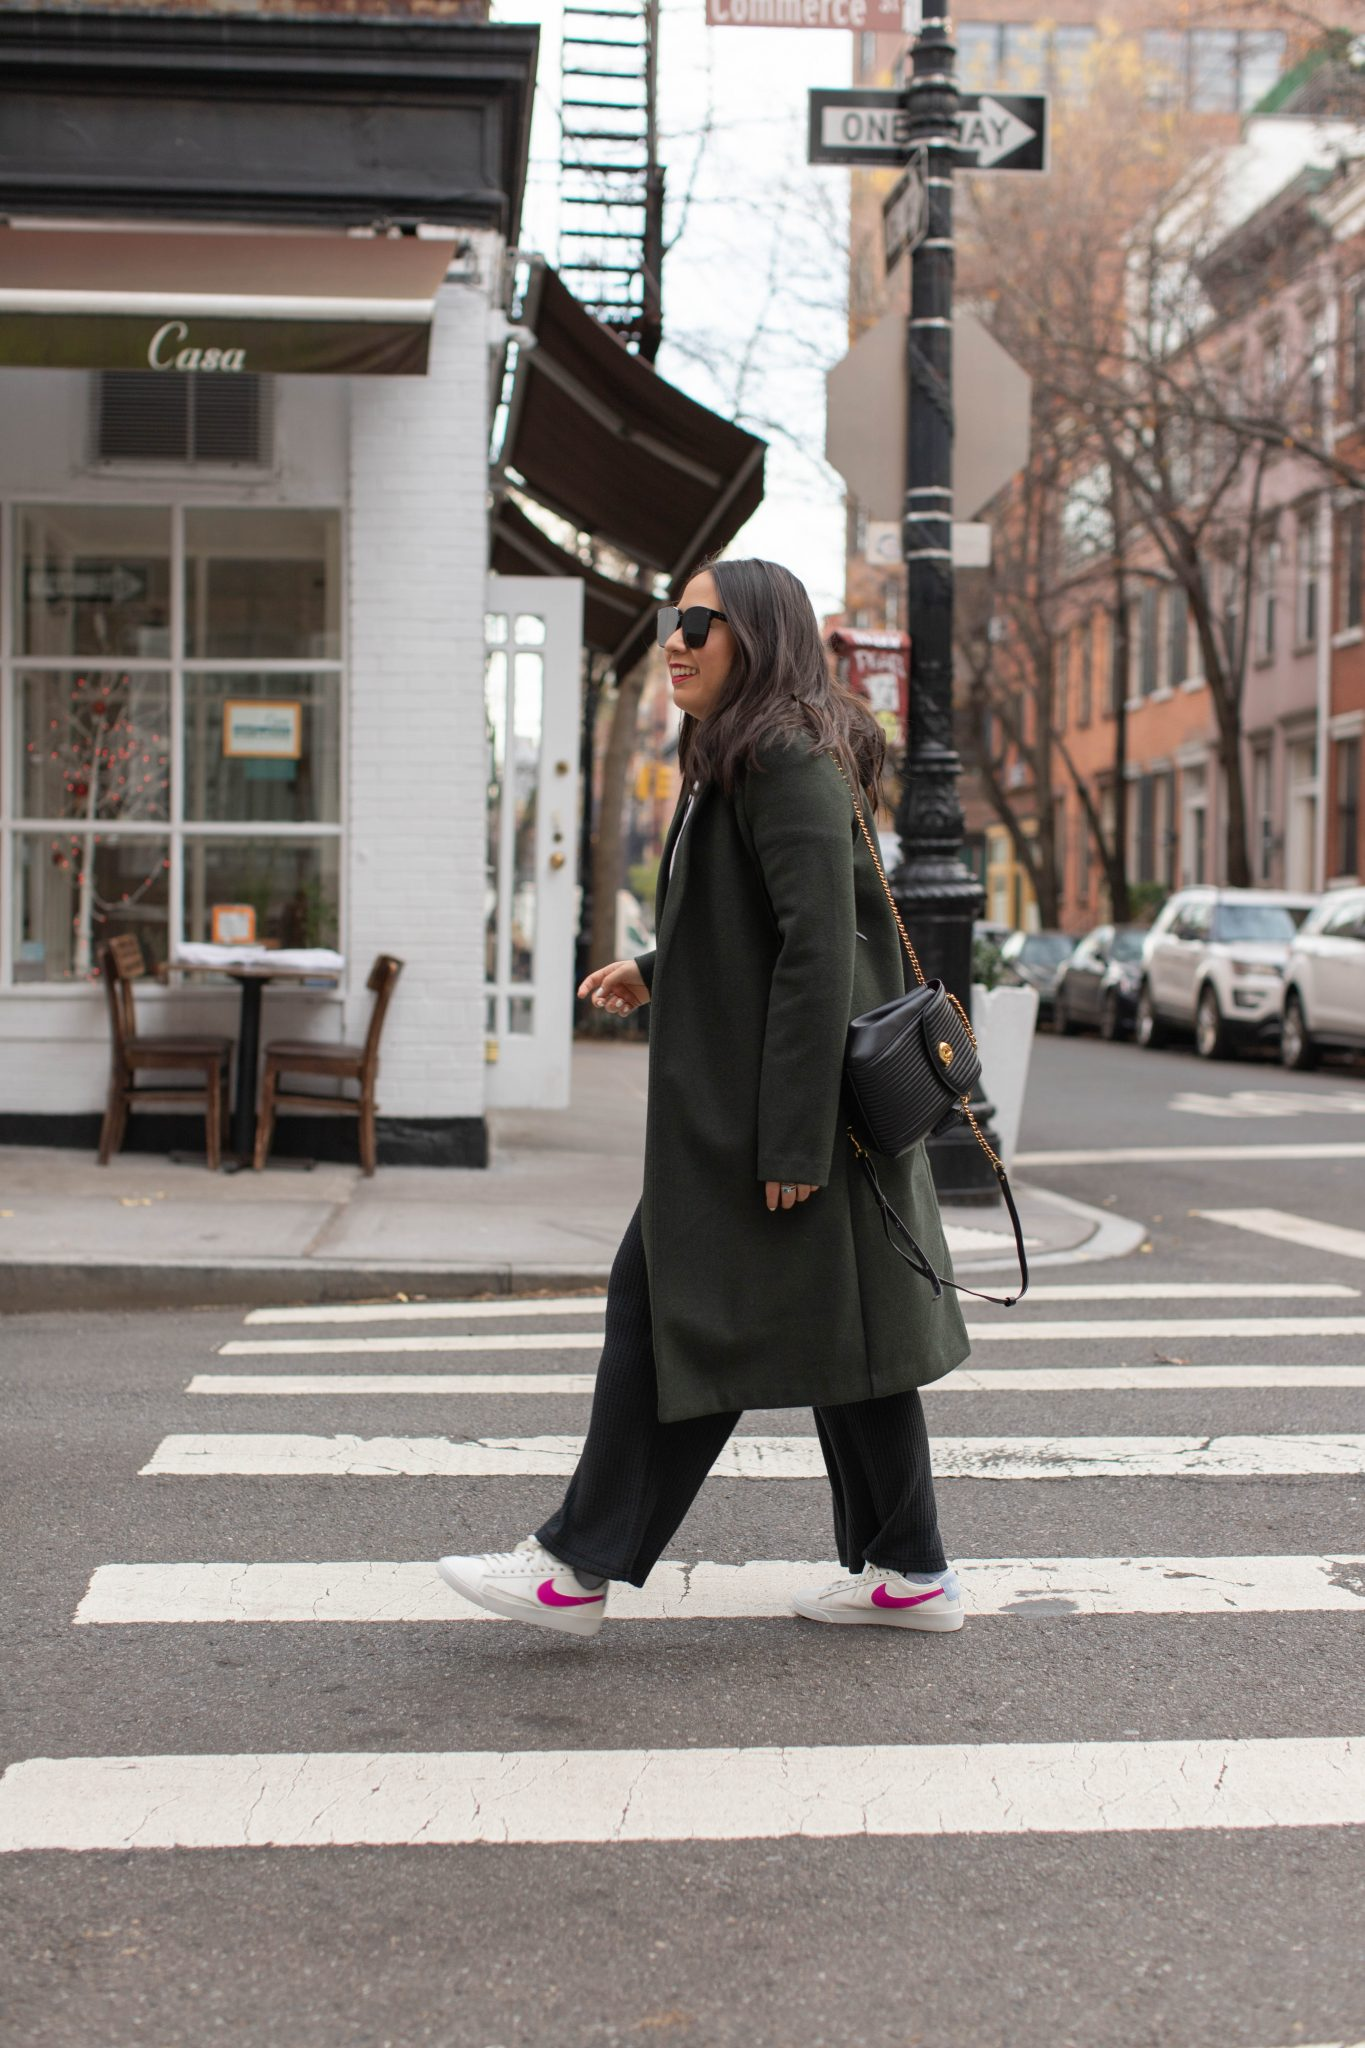 5 Things I Learned About Myself in 2020 by Basically A Mess (image of a woman in loungewear and green overcoat in new york city)